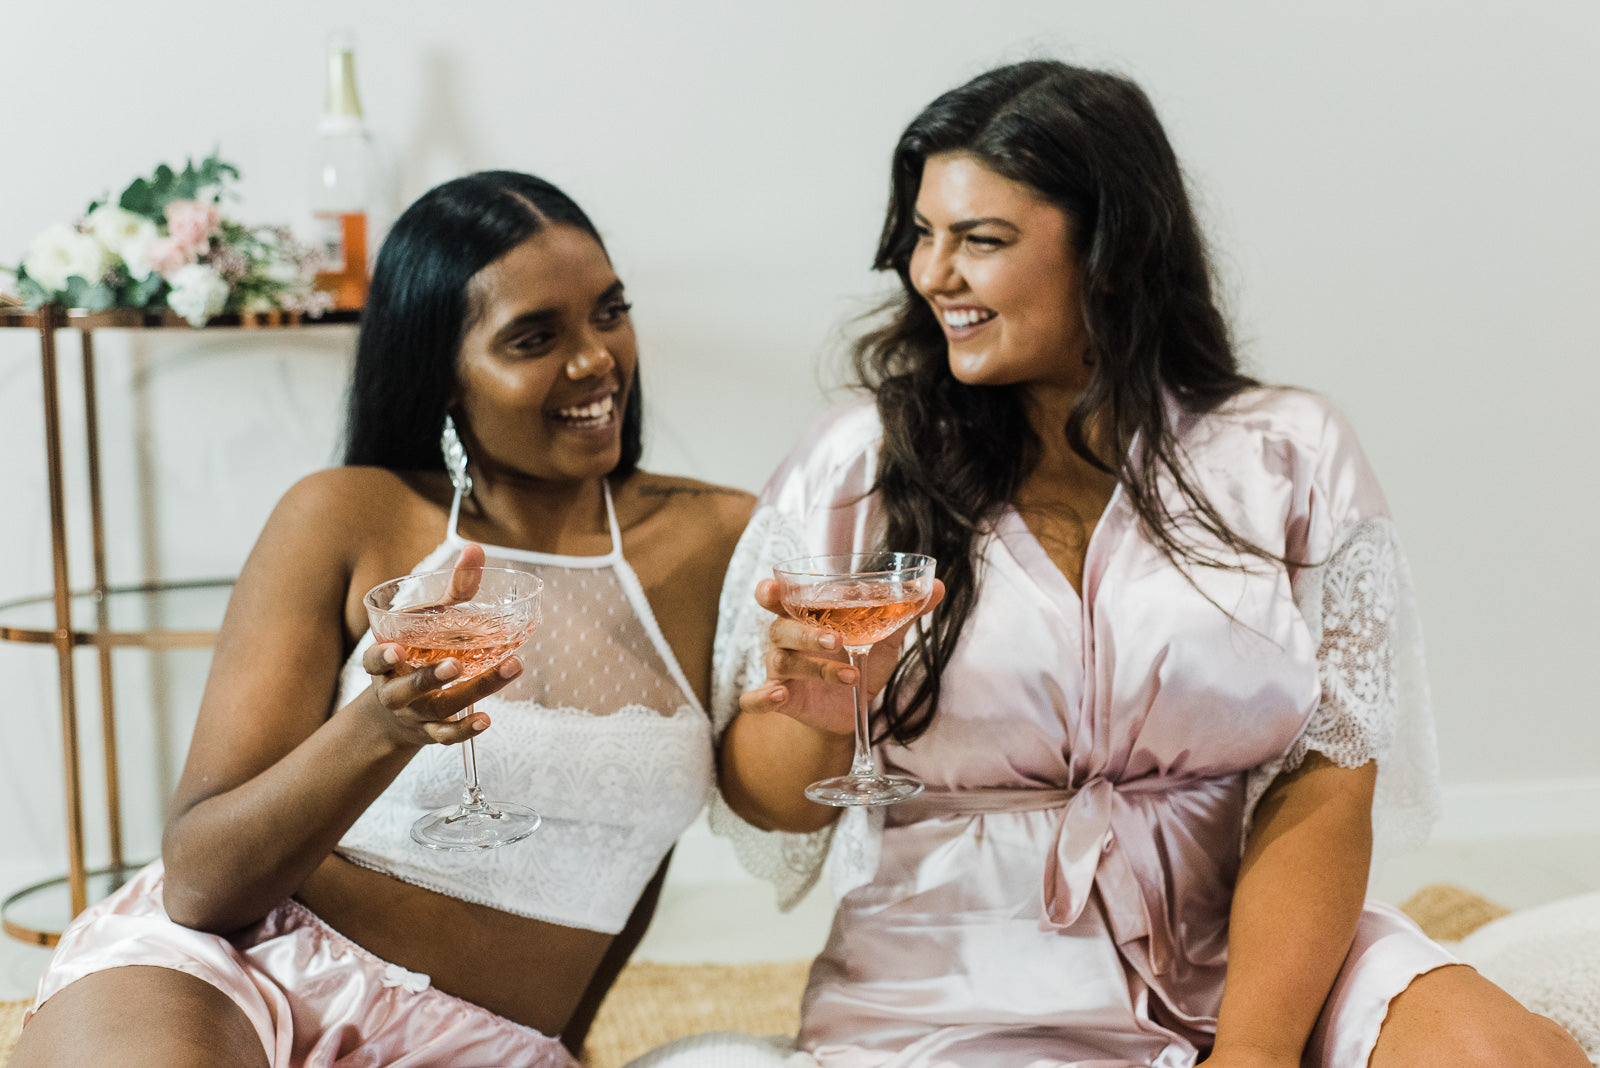 luxury loungewear pjs by lazy girl lingerie